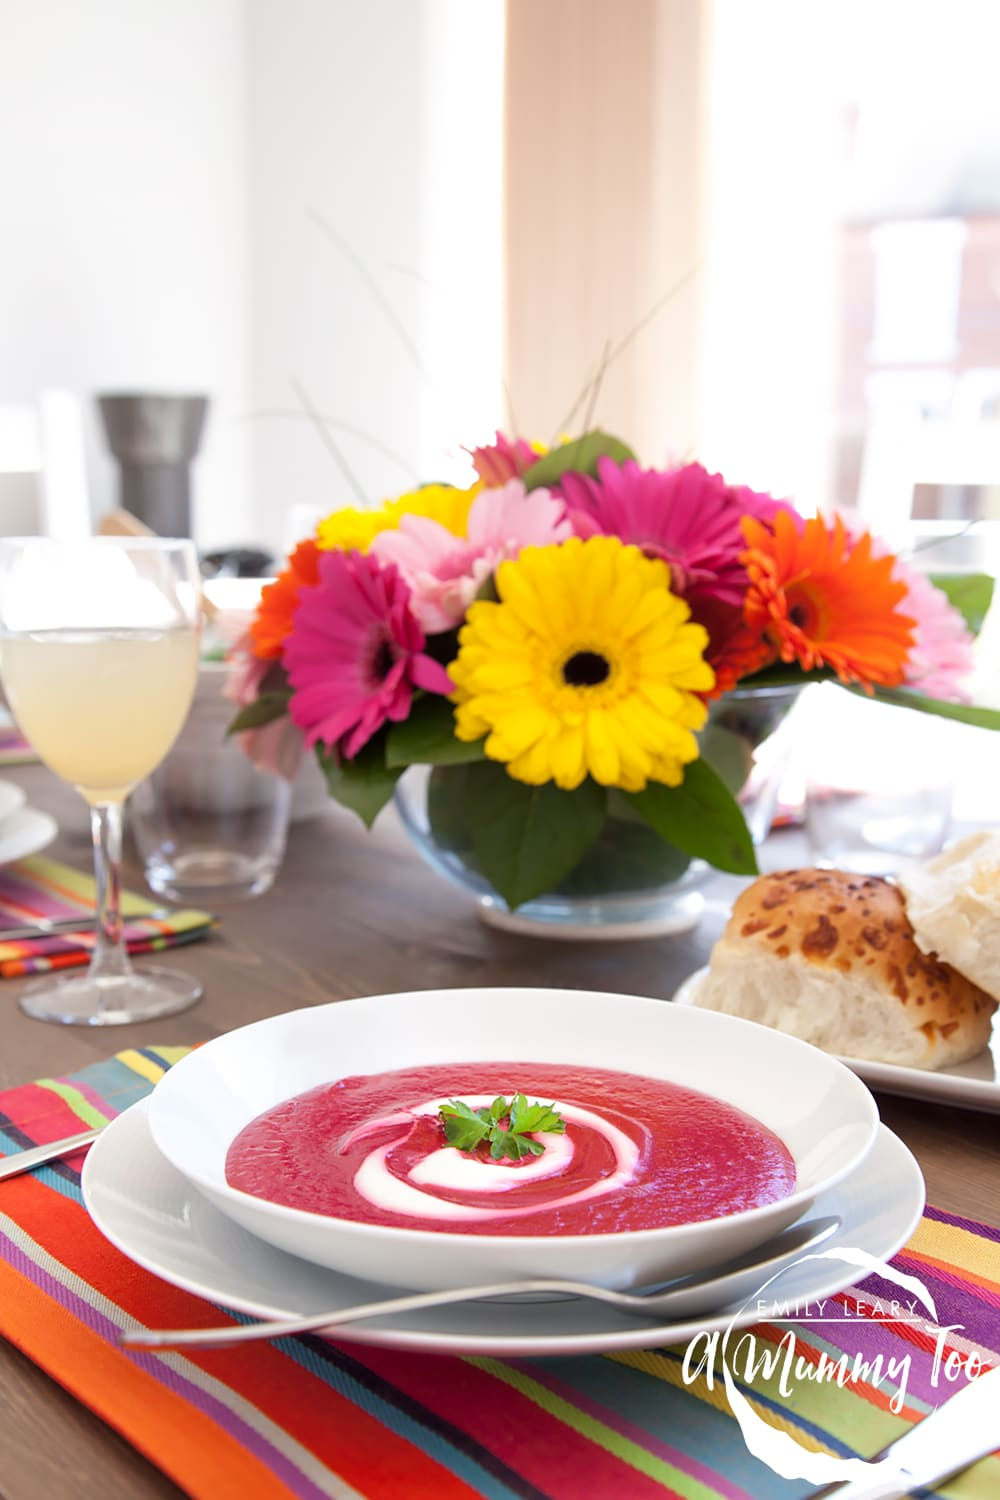 Vibrant pink roasted beetroot soup served in a shallow white bowl on a table set for dinner.